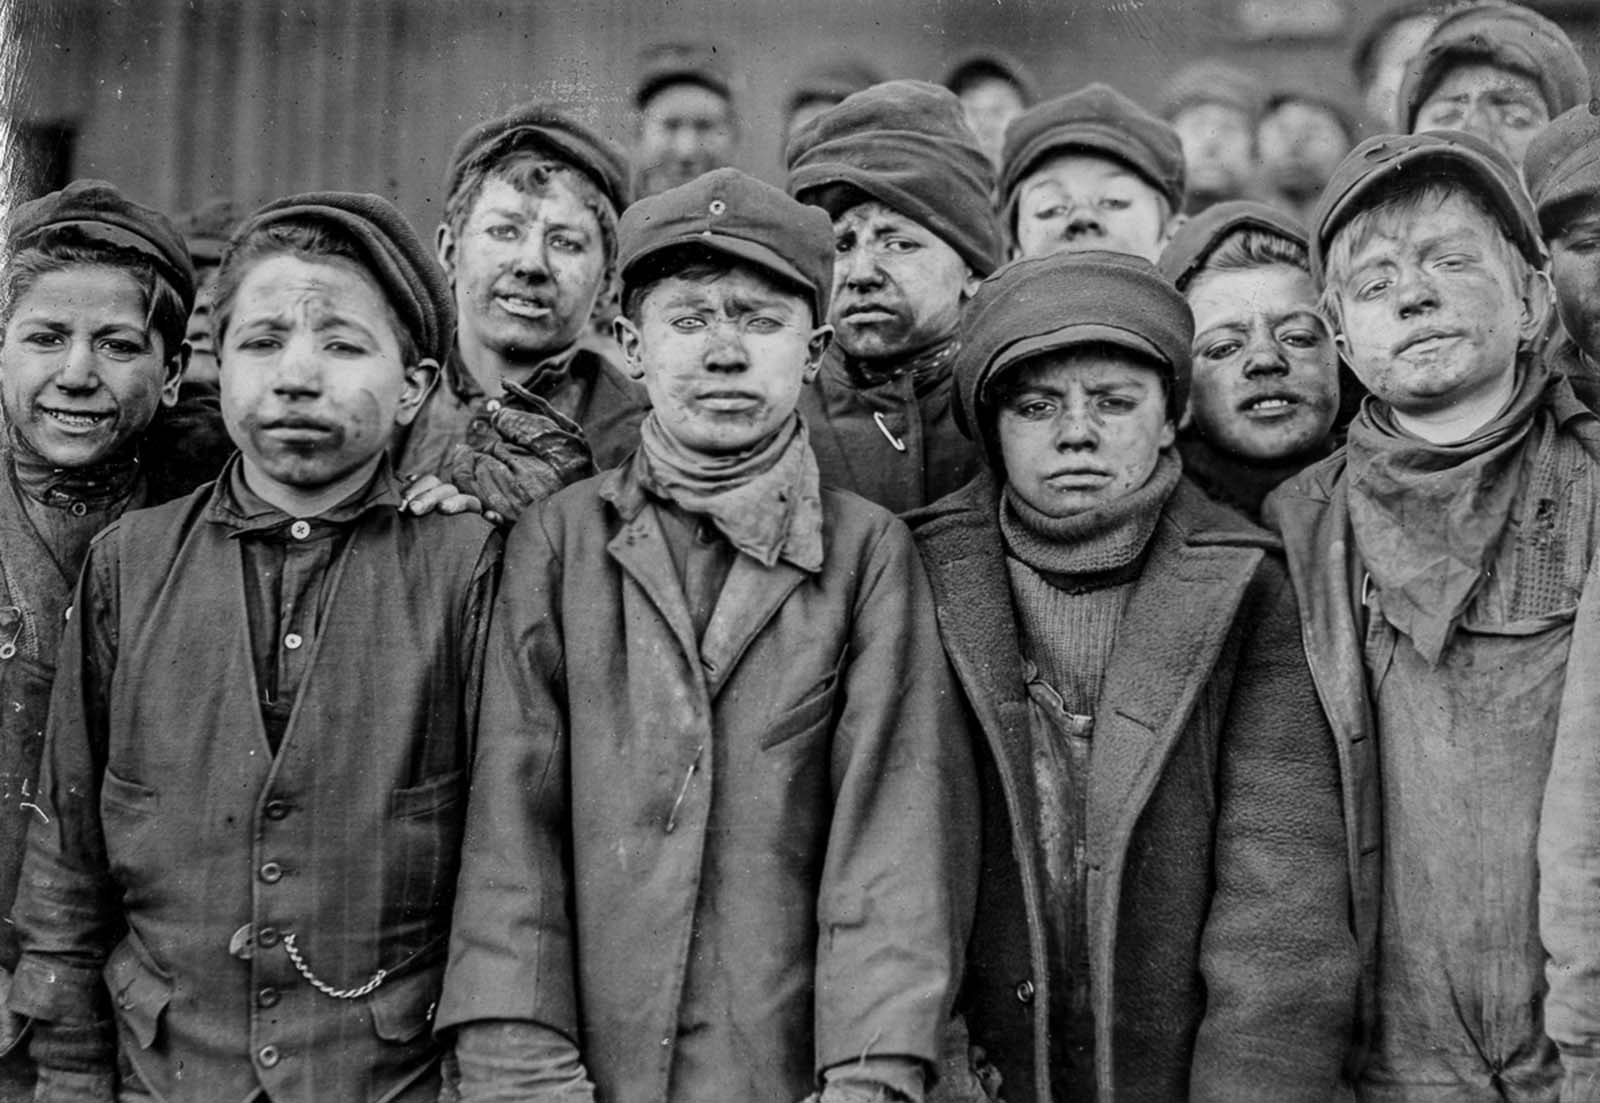 Breaker boys employed by the Pennsylvania Coal Company. 1911.